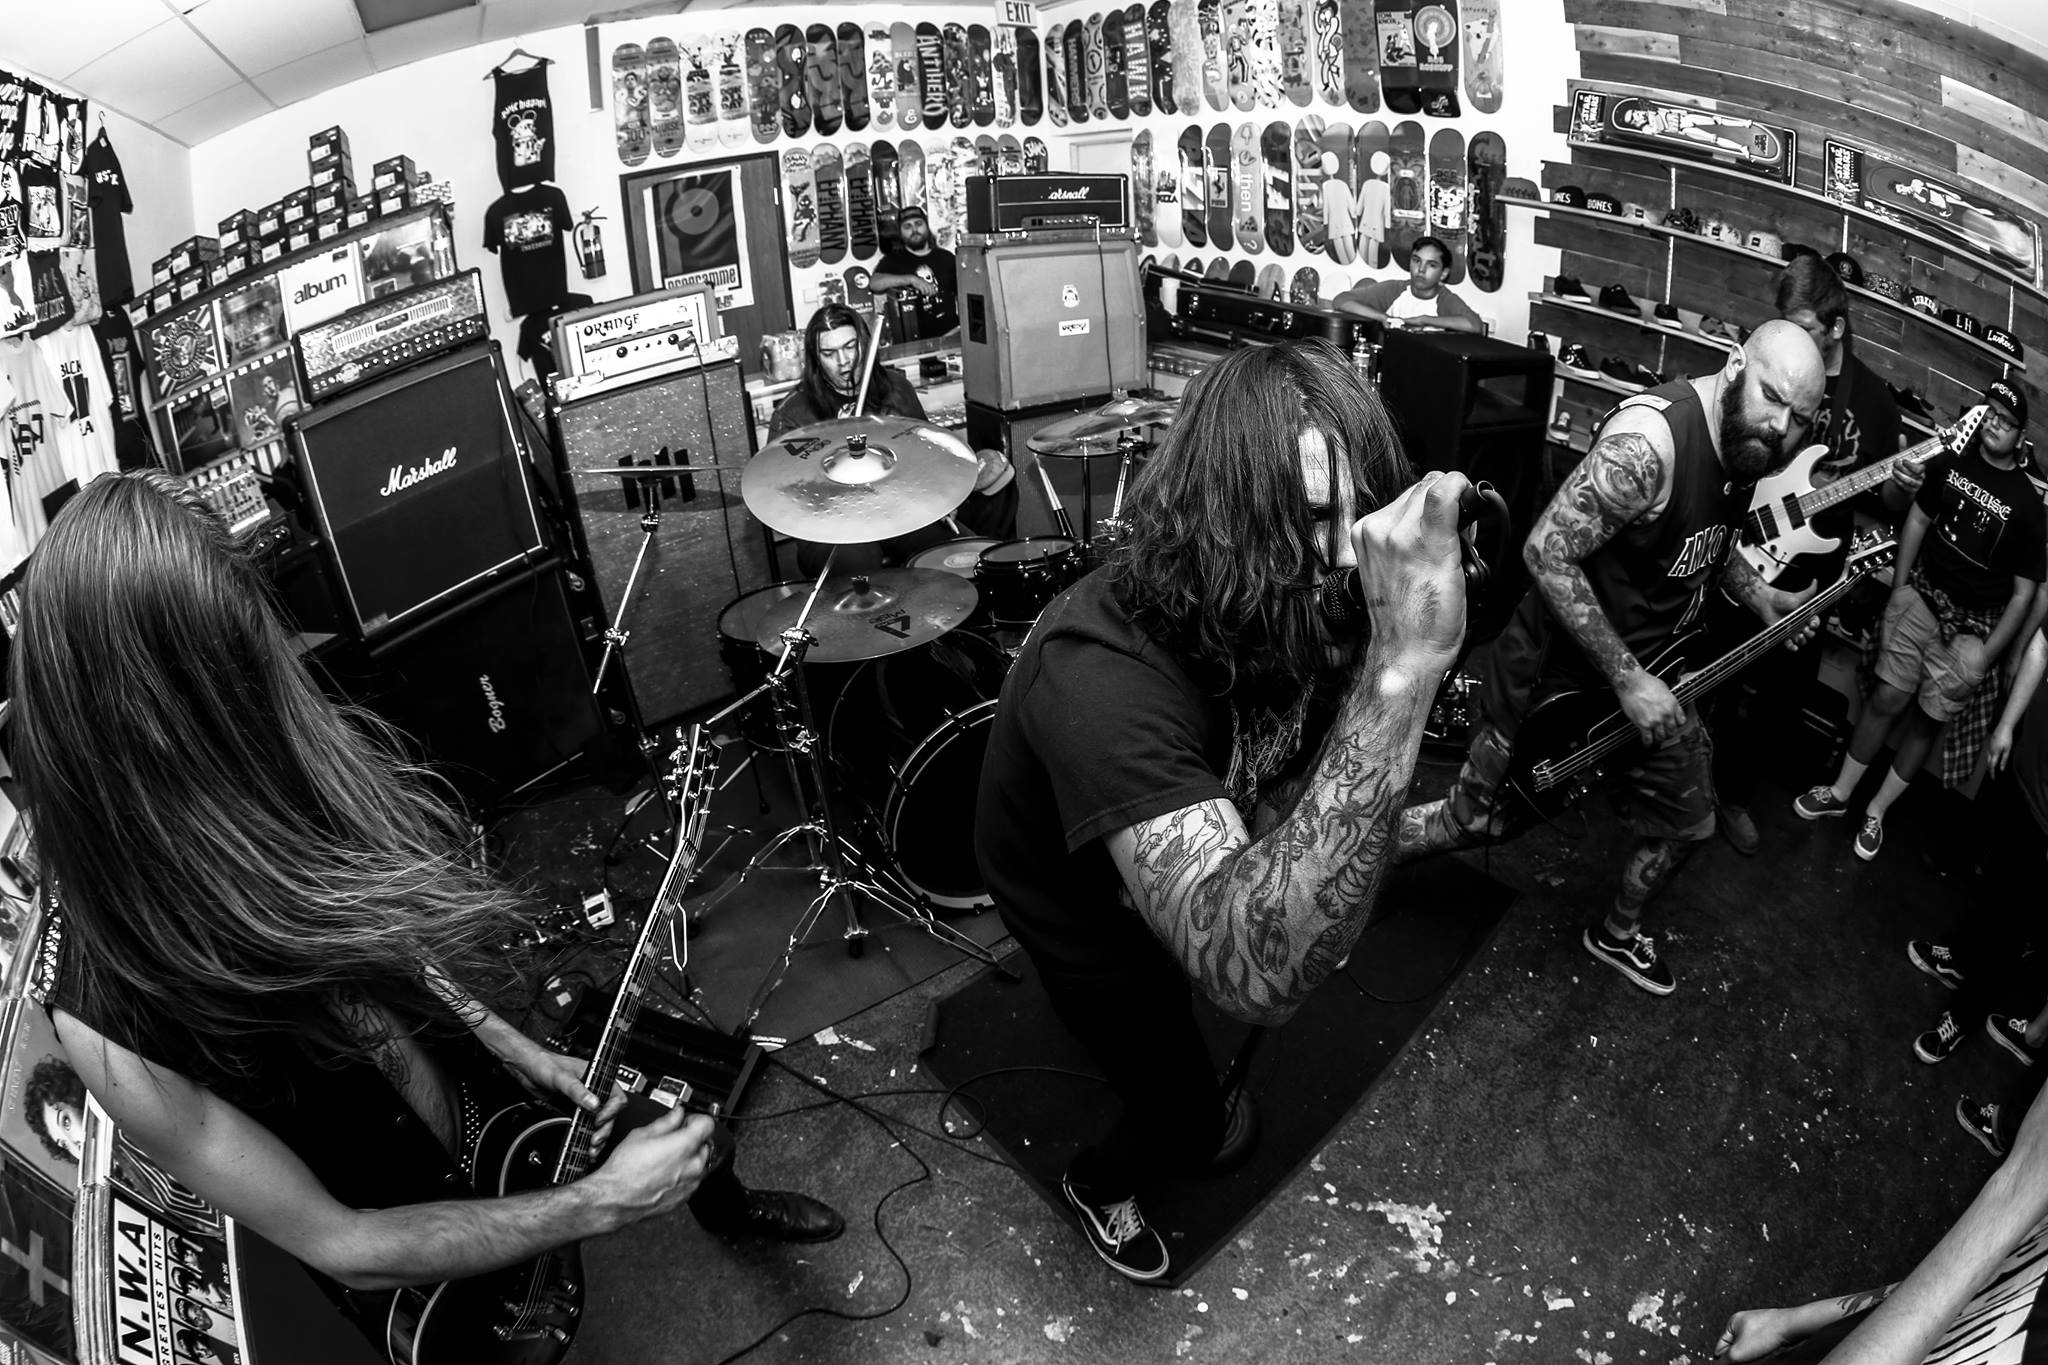 Gatecreeper playing at Programme Skate & Sound (Fullerton, CA), which serves as a venue, record store, & skate shop.